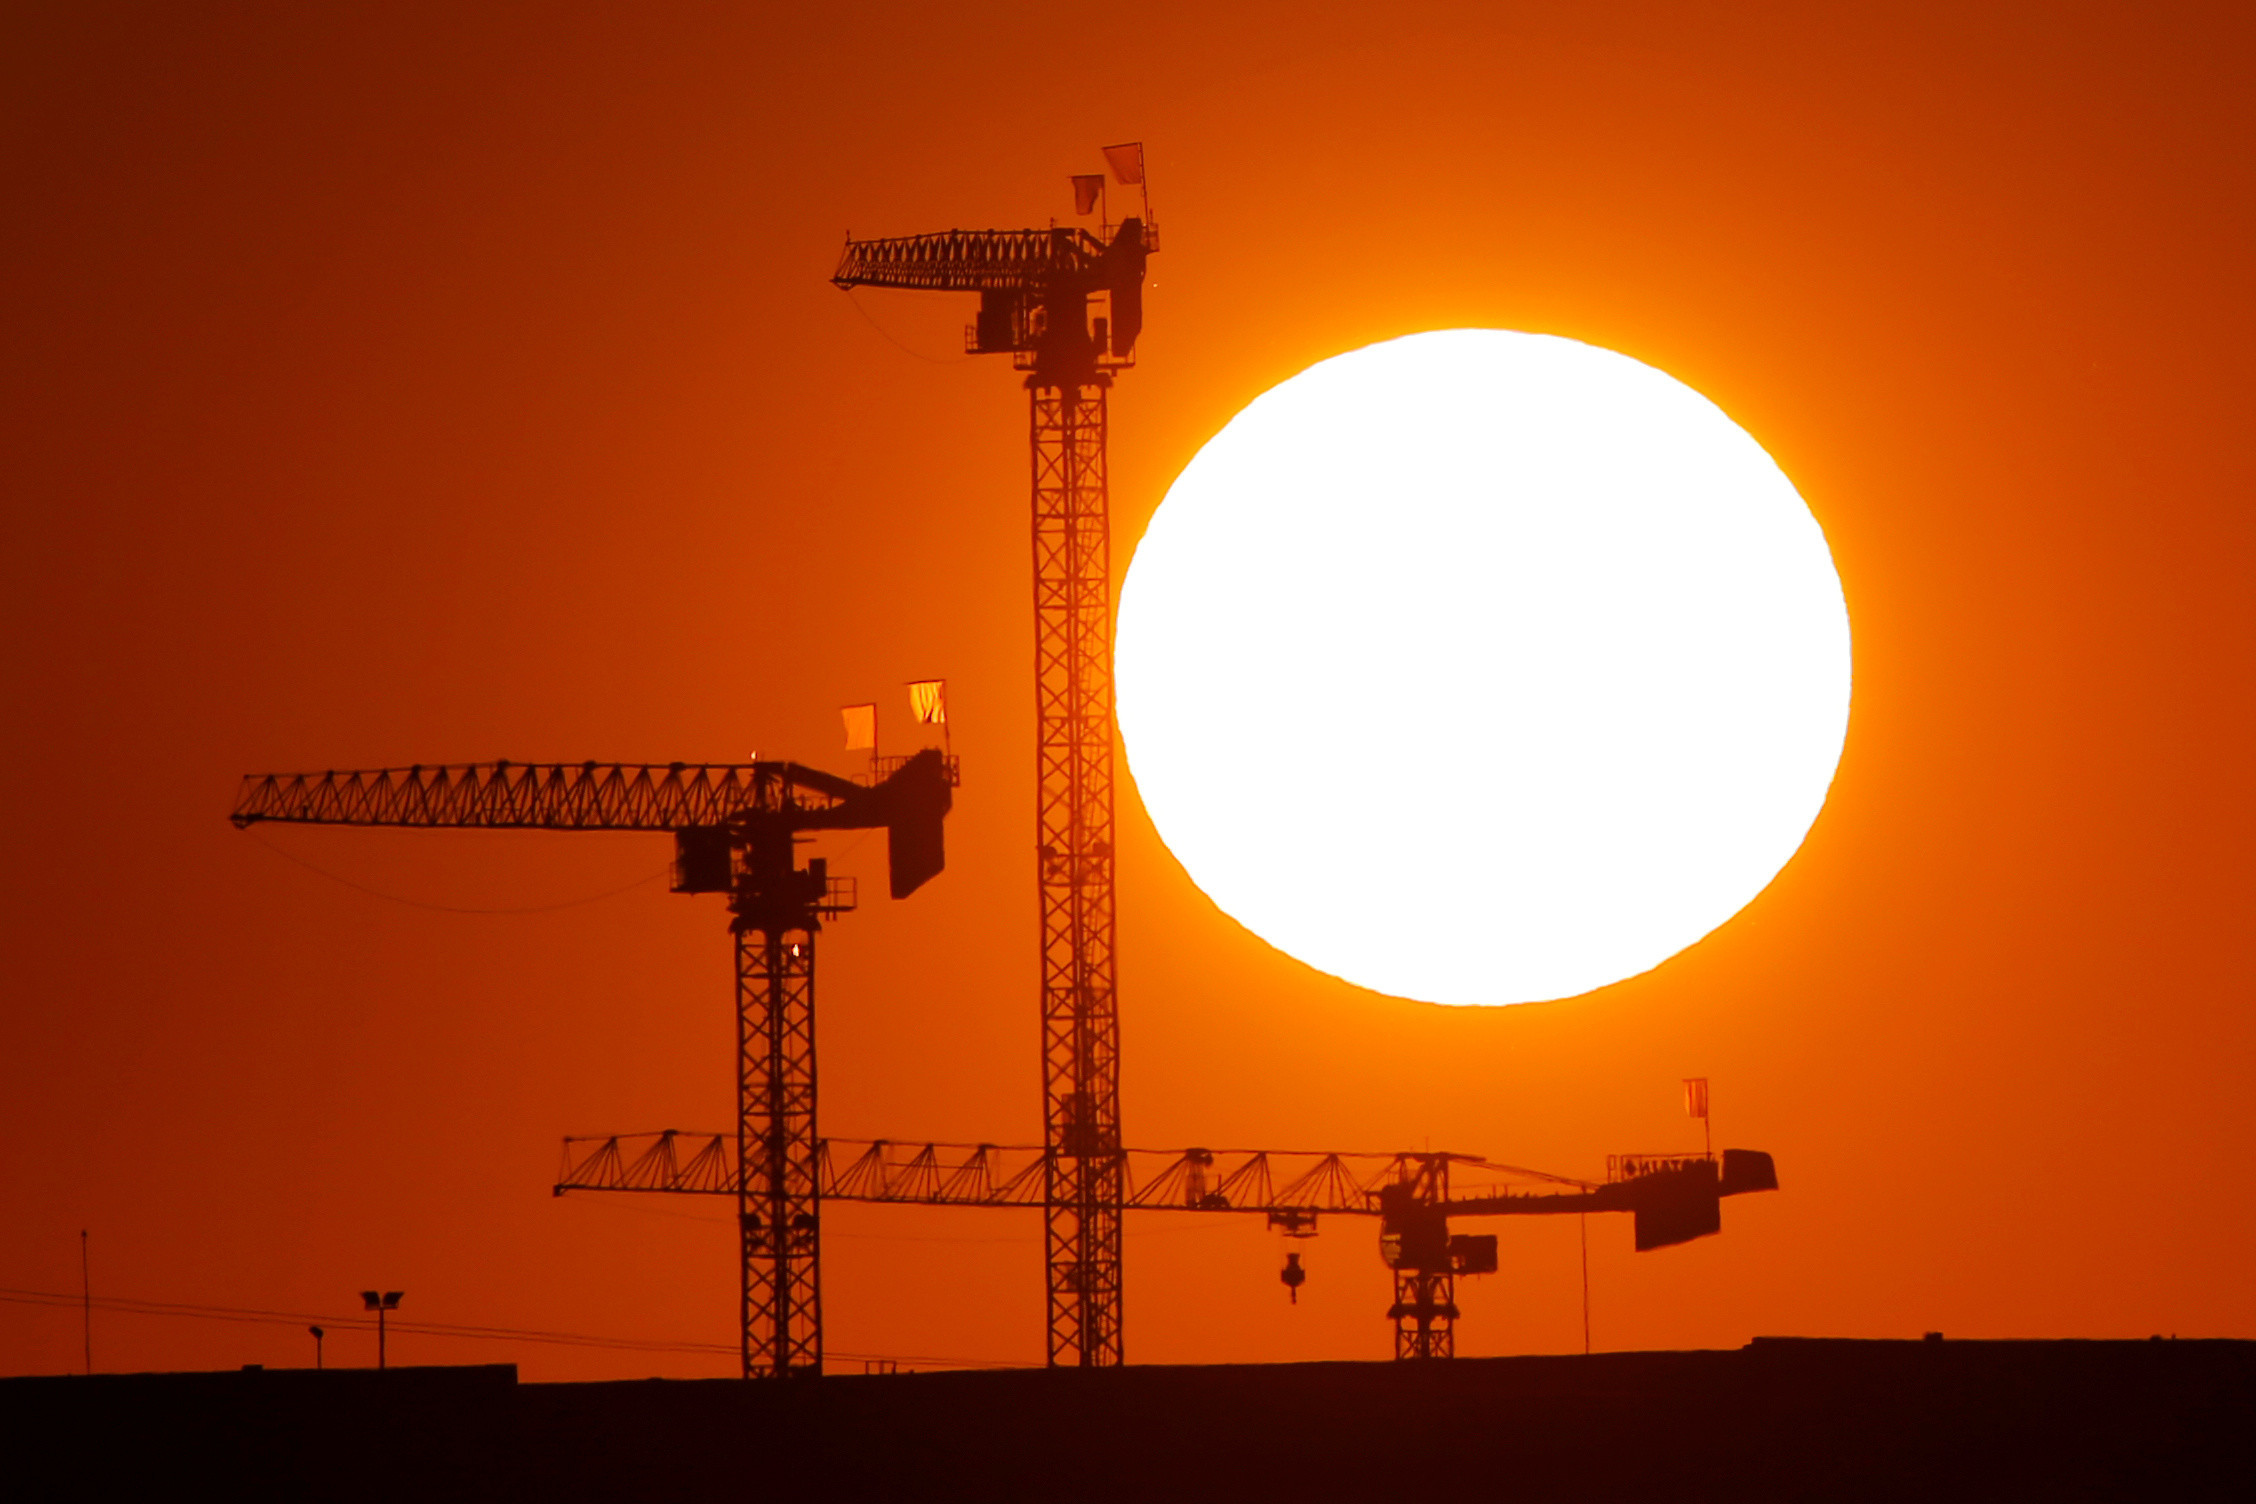 Cranes are pictured during sunset on a construction site in Saint-Laurent-Blangy near Arras, France, August 25, 2019. REUTERS/Pascal Rossignol - RC13A45A33C0